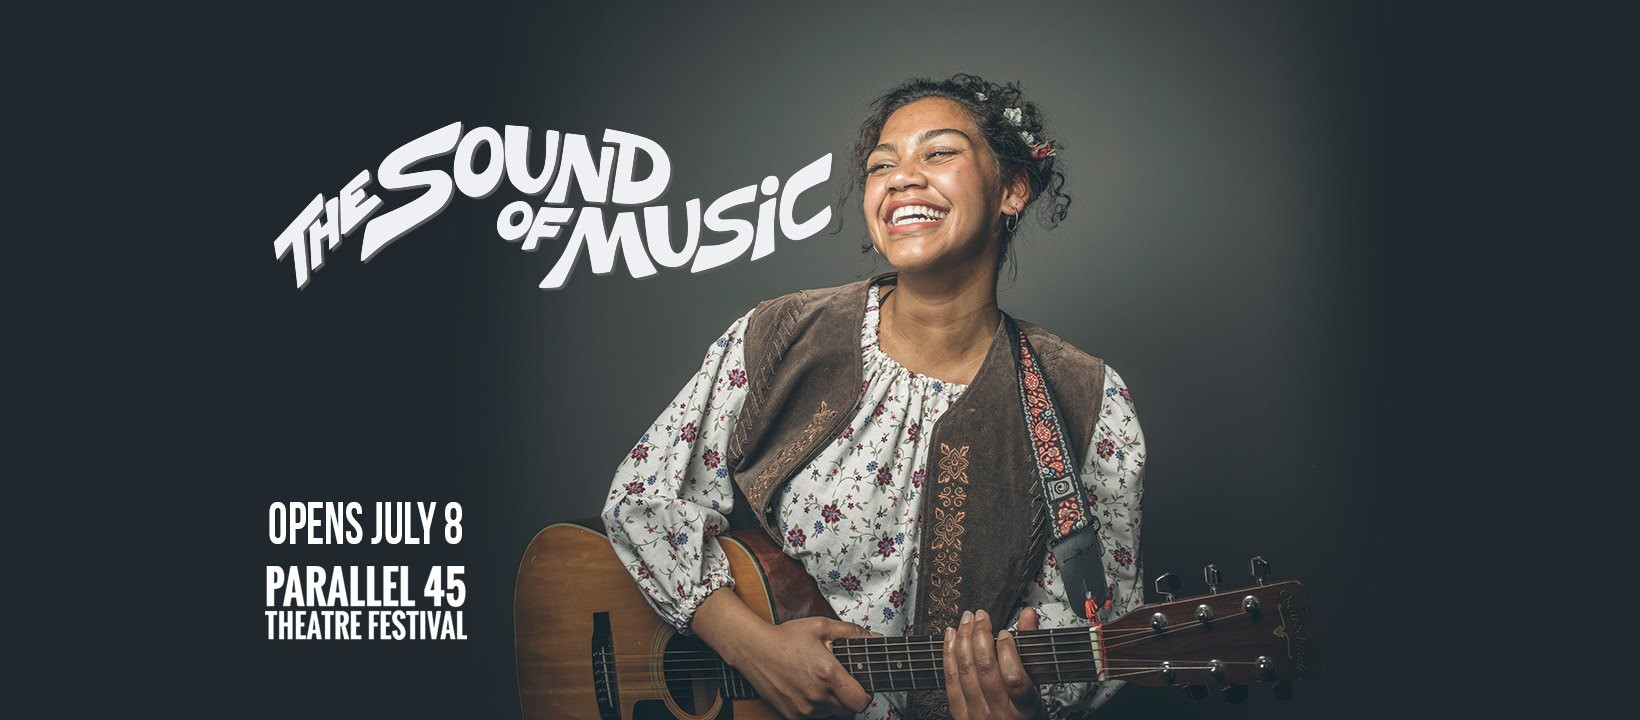 """Parallel 45 Theatre production of """"The Sound of Music,"""" starring Maya Lagerstam as Maria; premiering July 8, 2021 